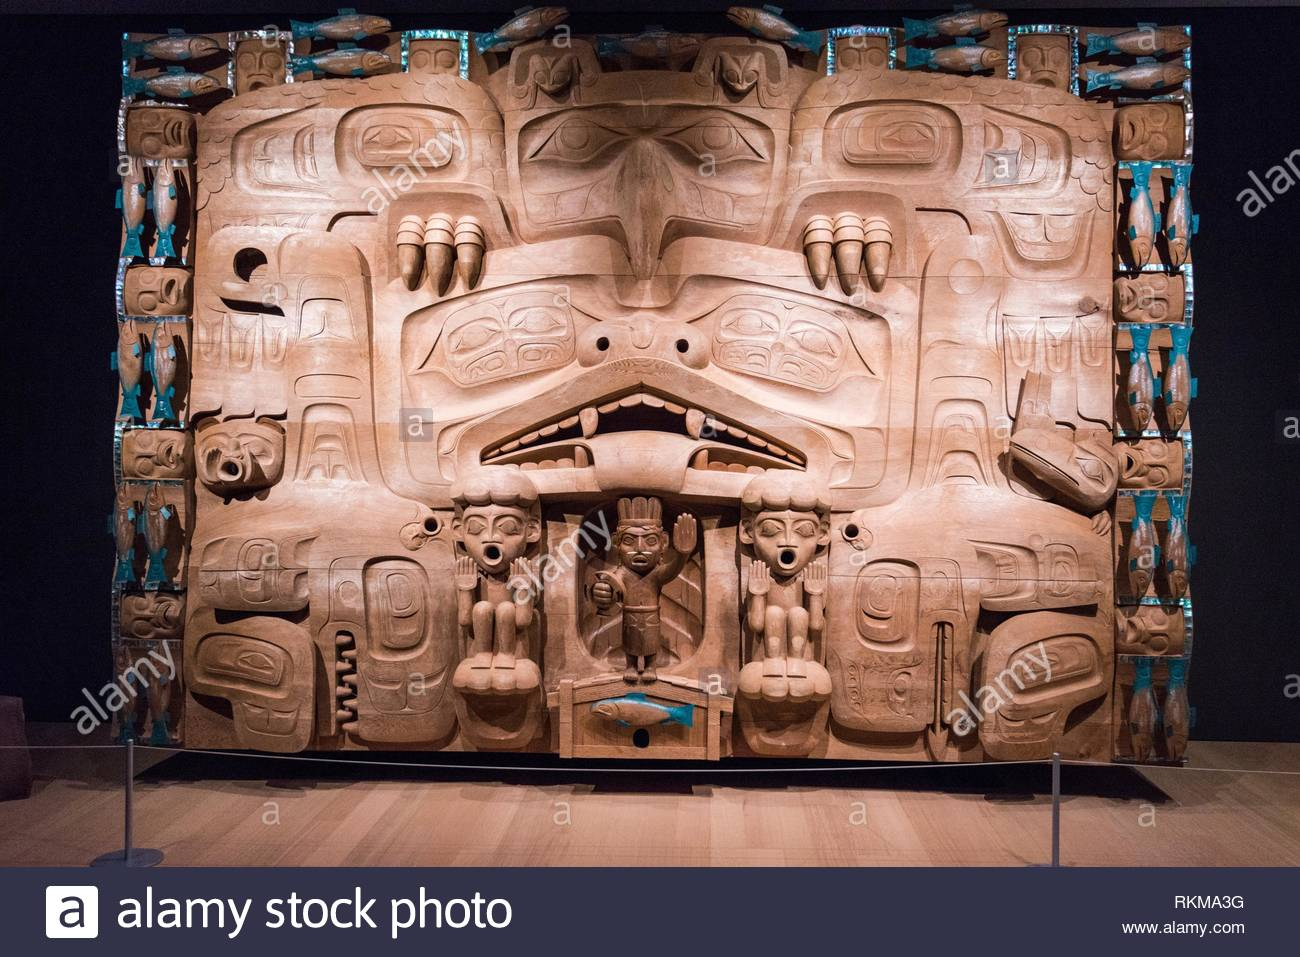 The Dance Screen by James Hart, West coast First Nations art at the Audain Art Museum in Whistler, BC, Canada. - Stock Image